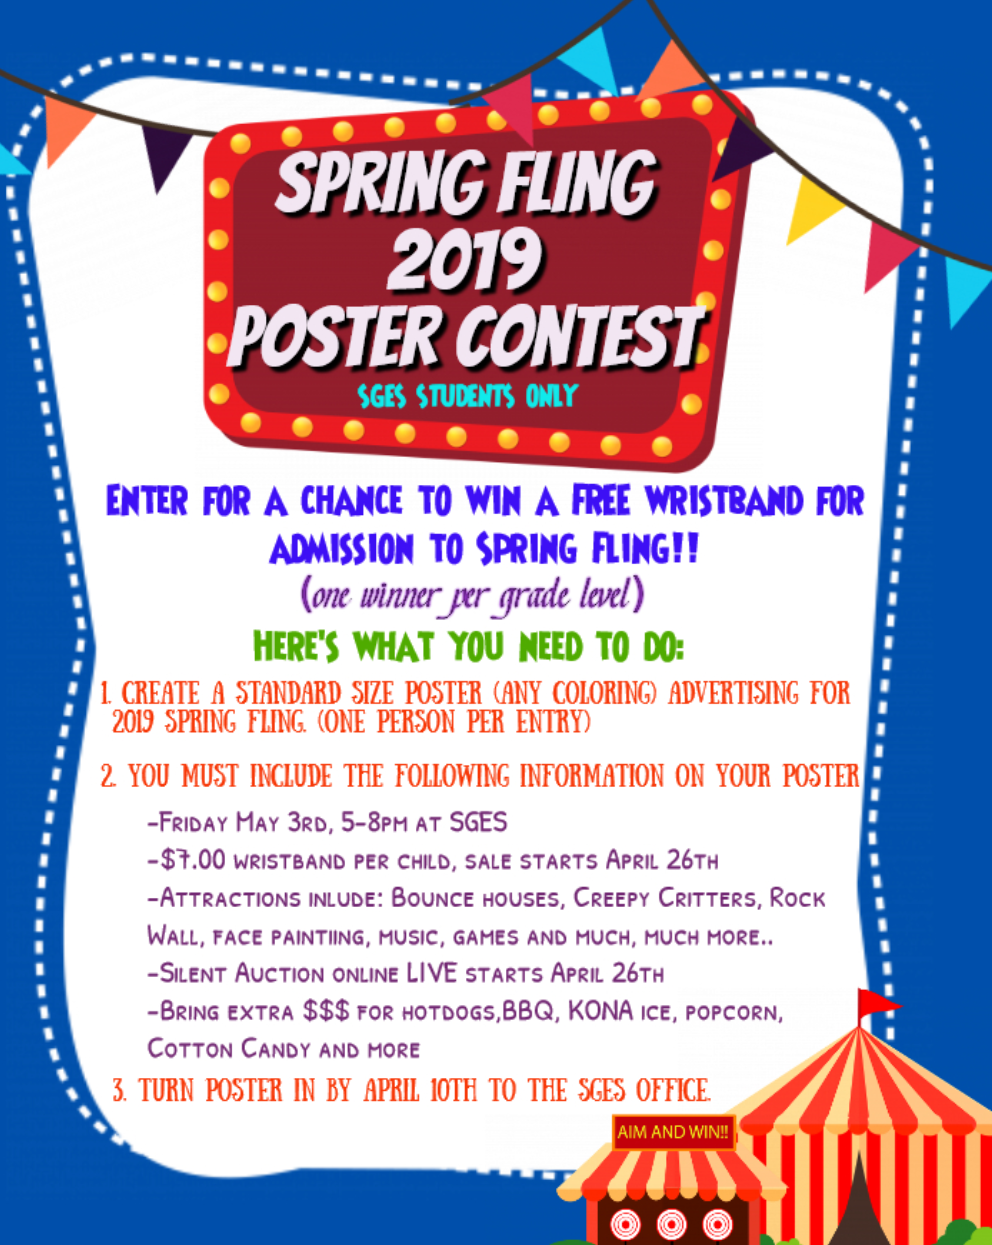 Spring Fling 2019 Poster Contest